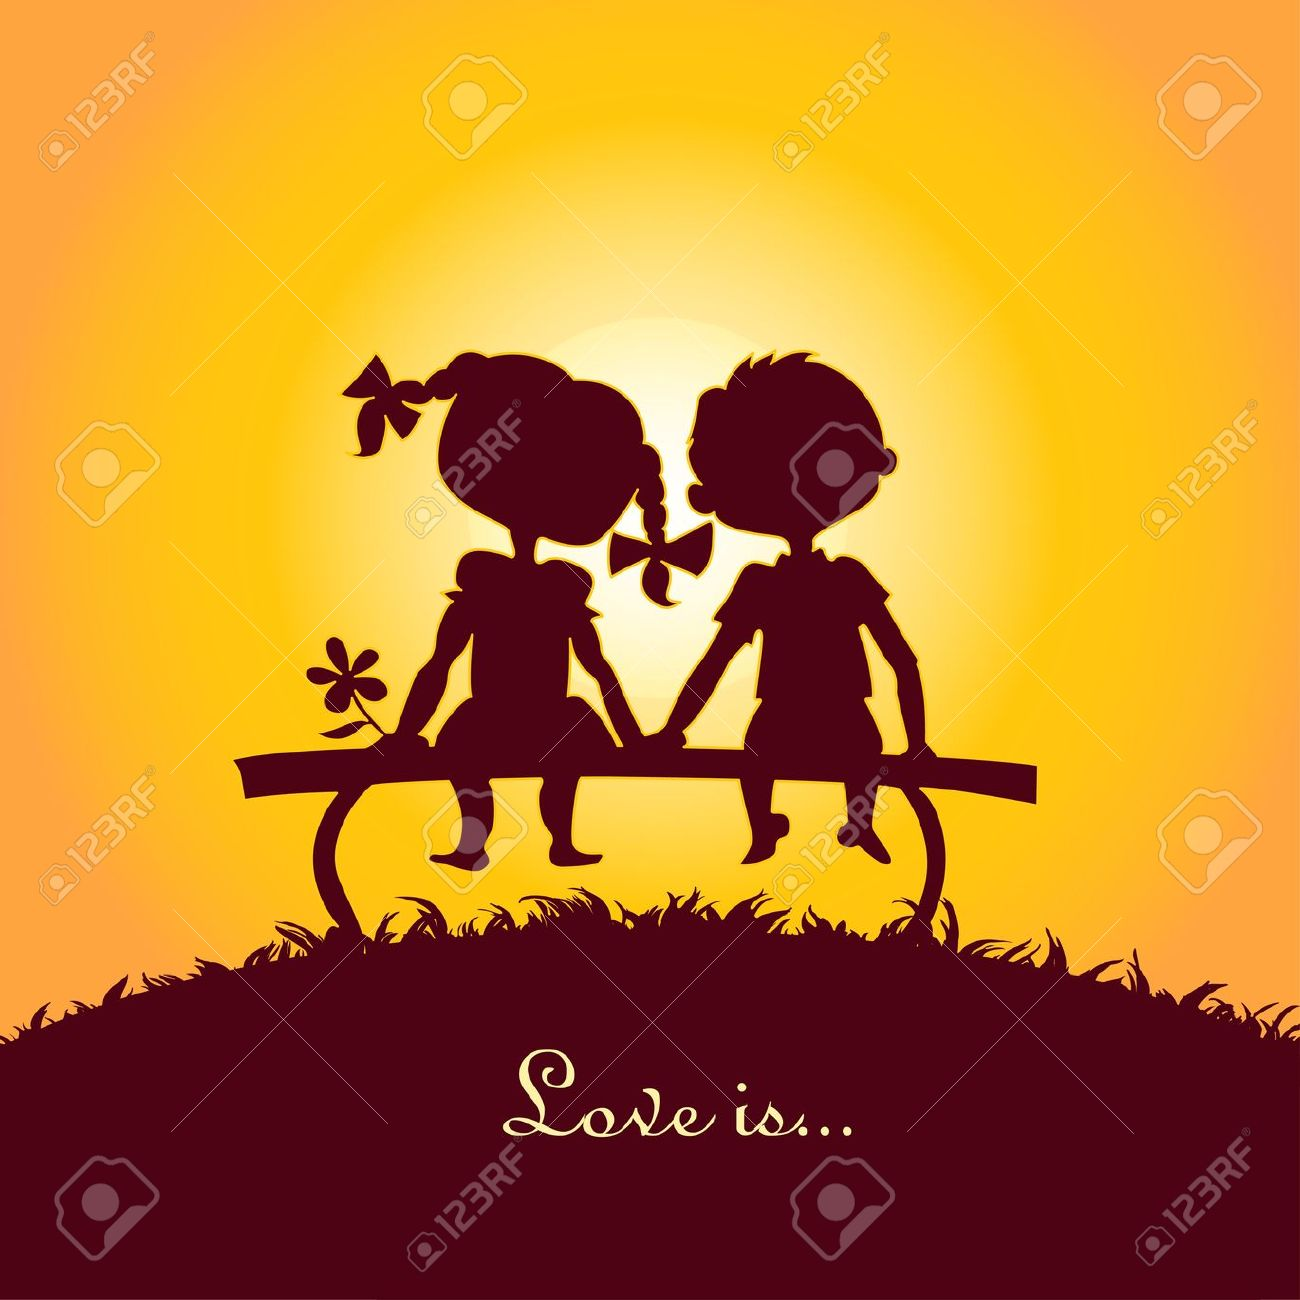 Girl And Boy Sitting Together Clipart Clipground